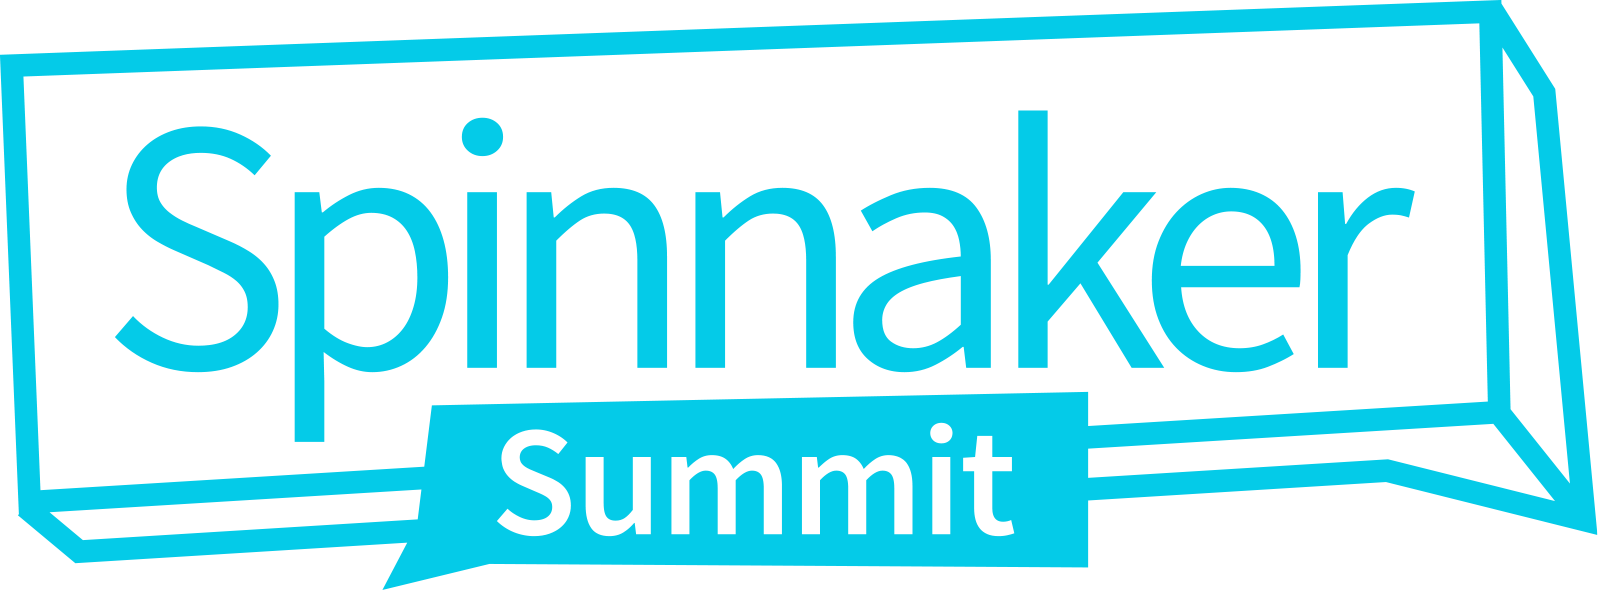 sp-logo-chat--teal.png